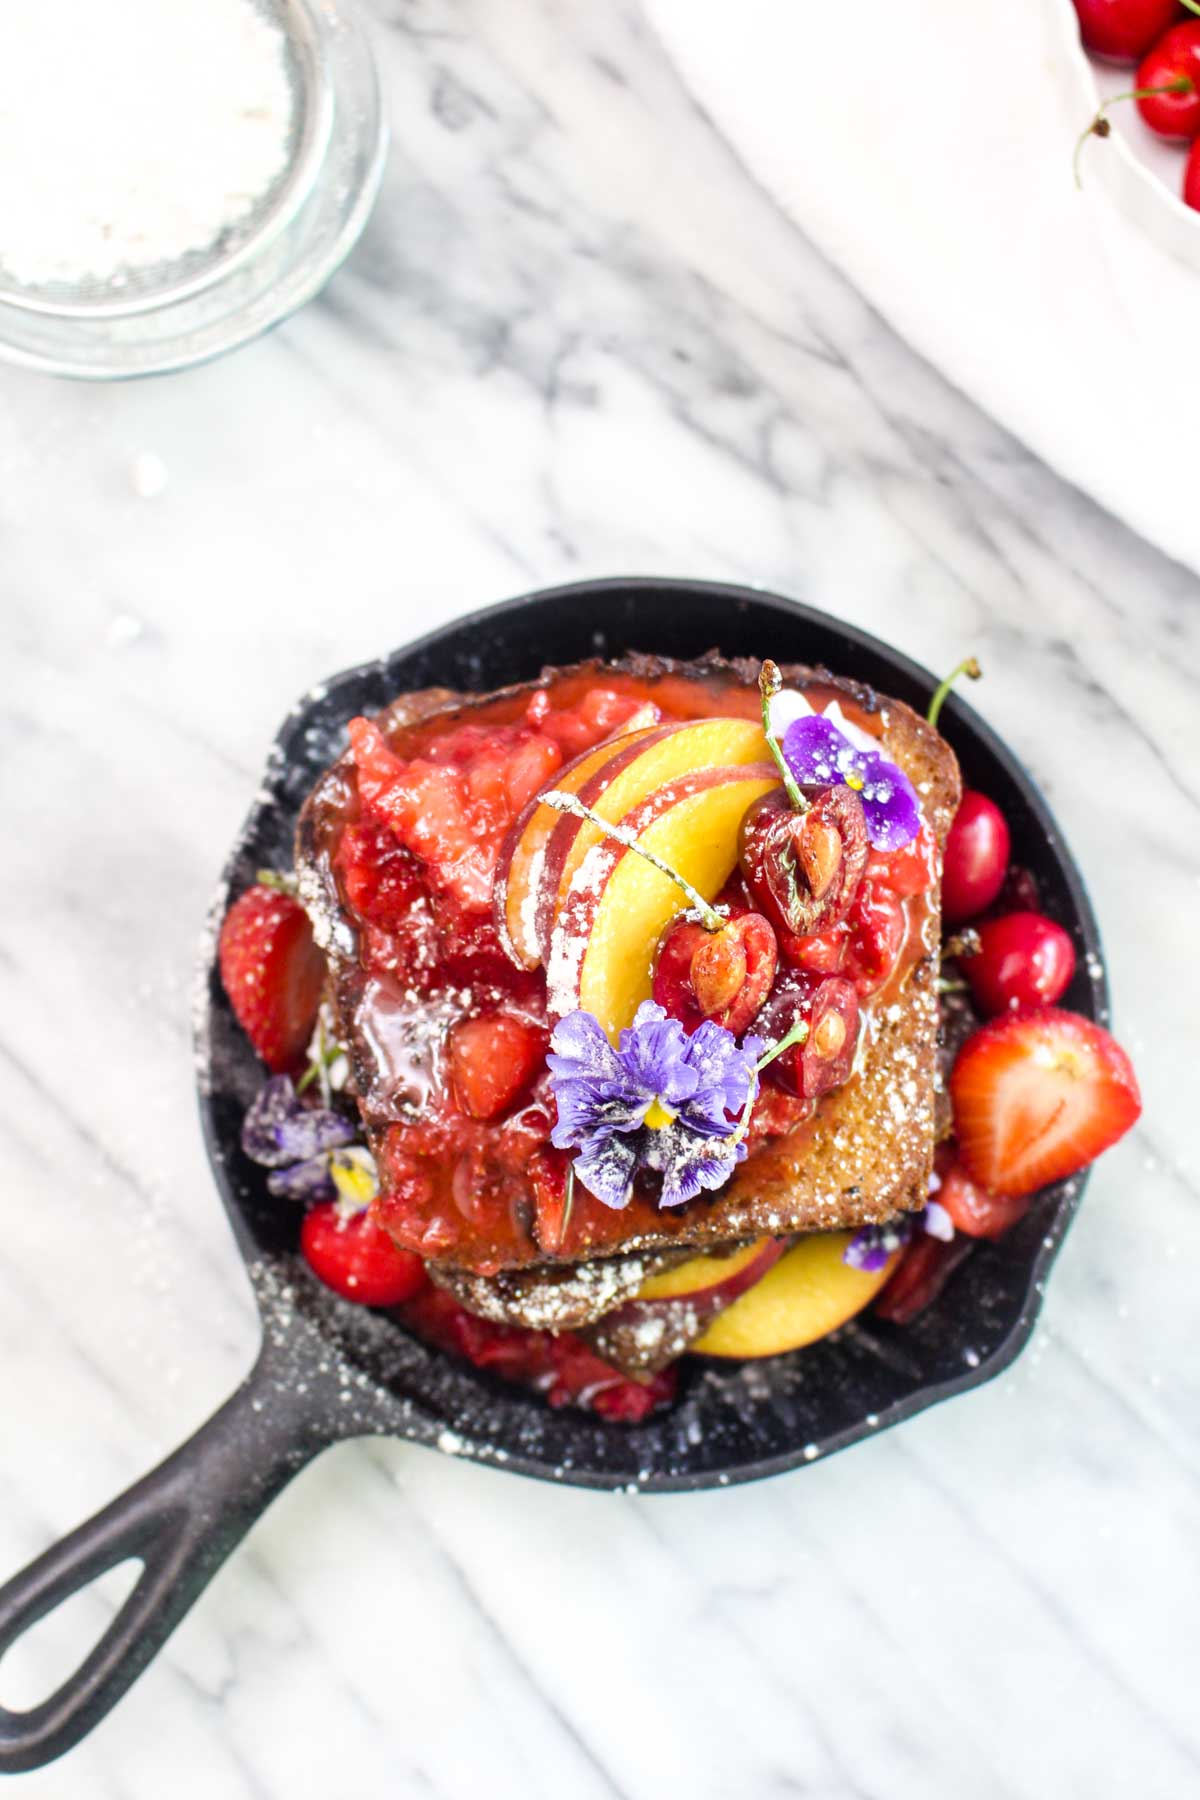 A top view of a cast iron skillet with a stack of french toast with strawberry sauce, flowers, powdered sugar, and peaches.